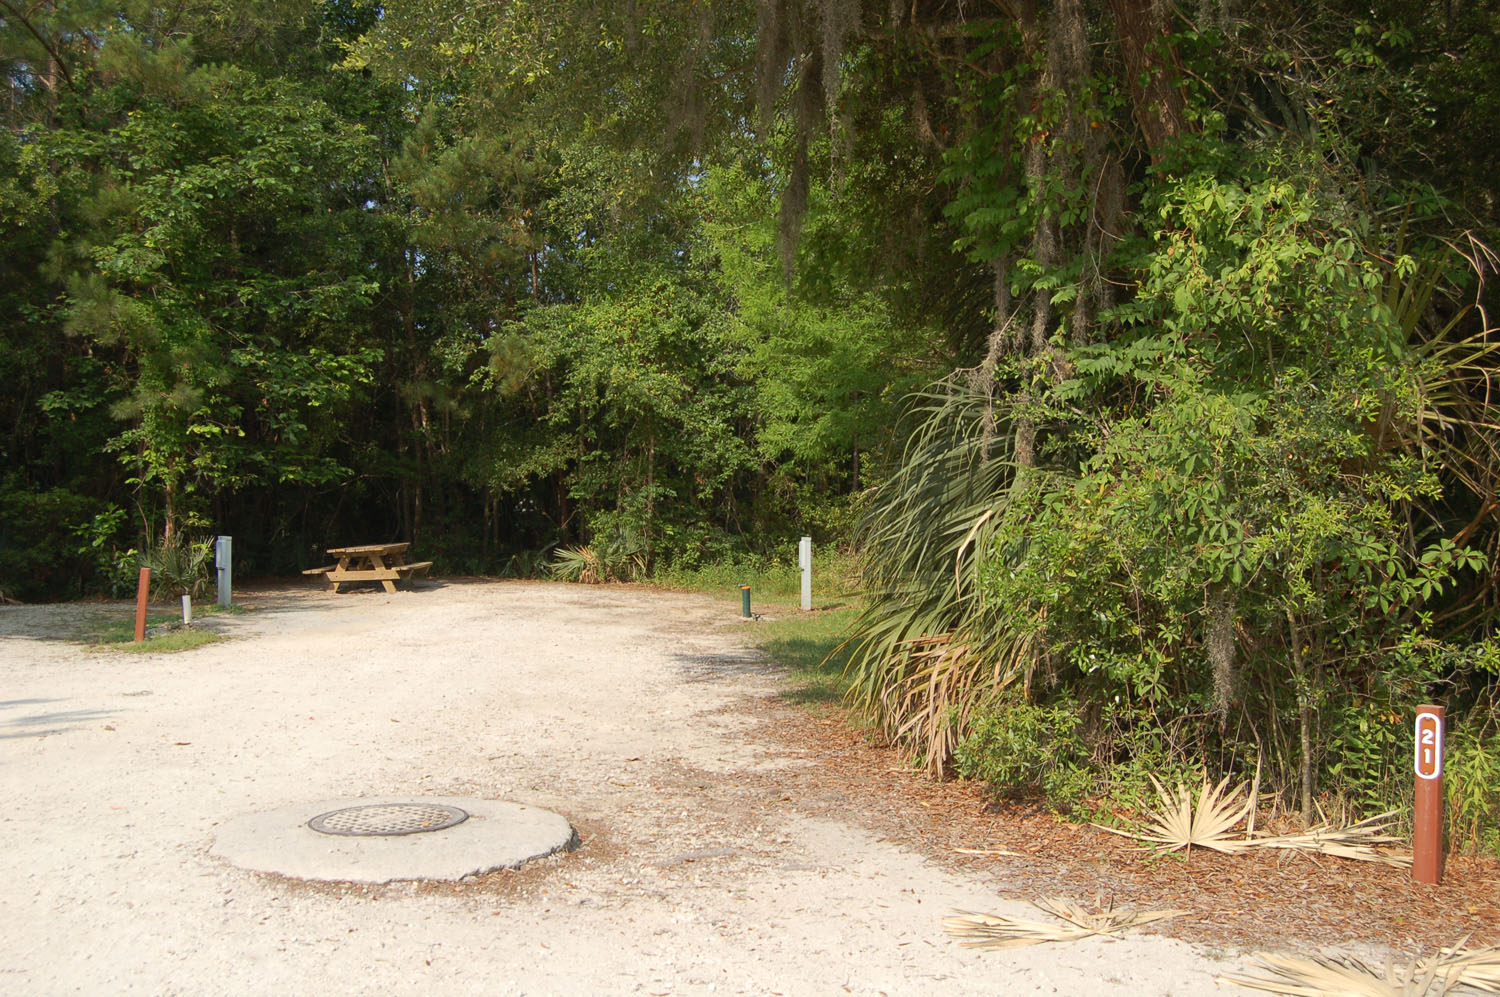 Image of campsite #21 at the Campground at James Island County Park